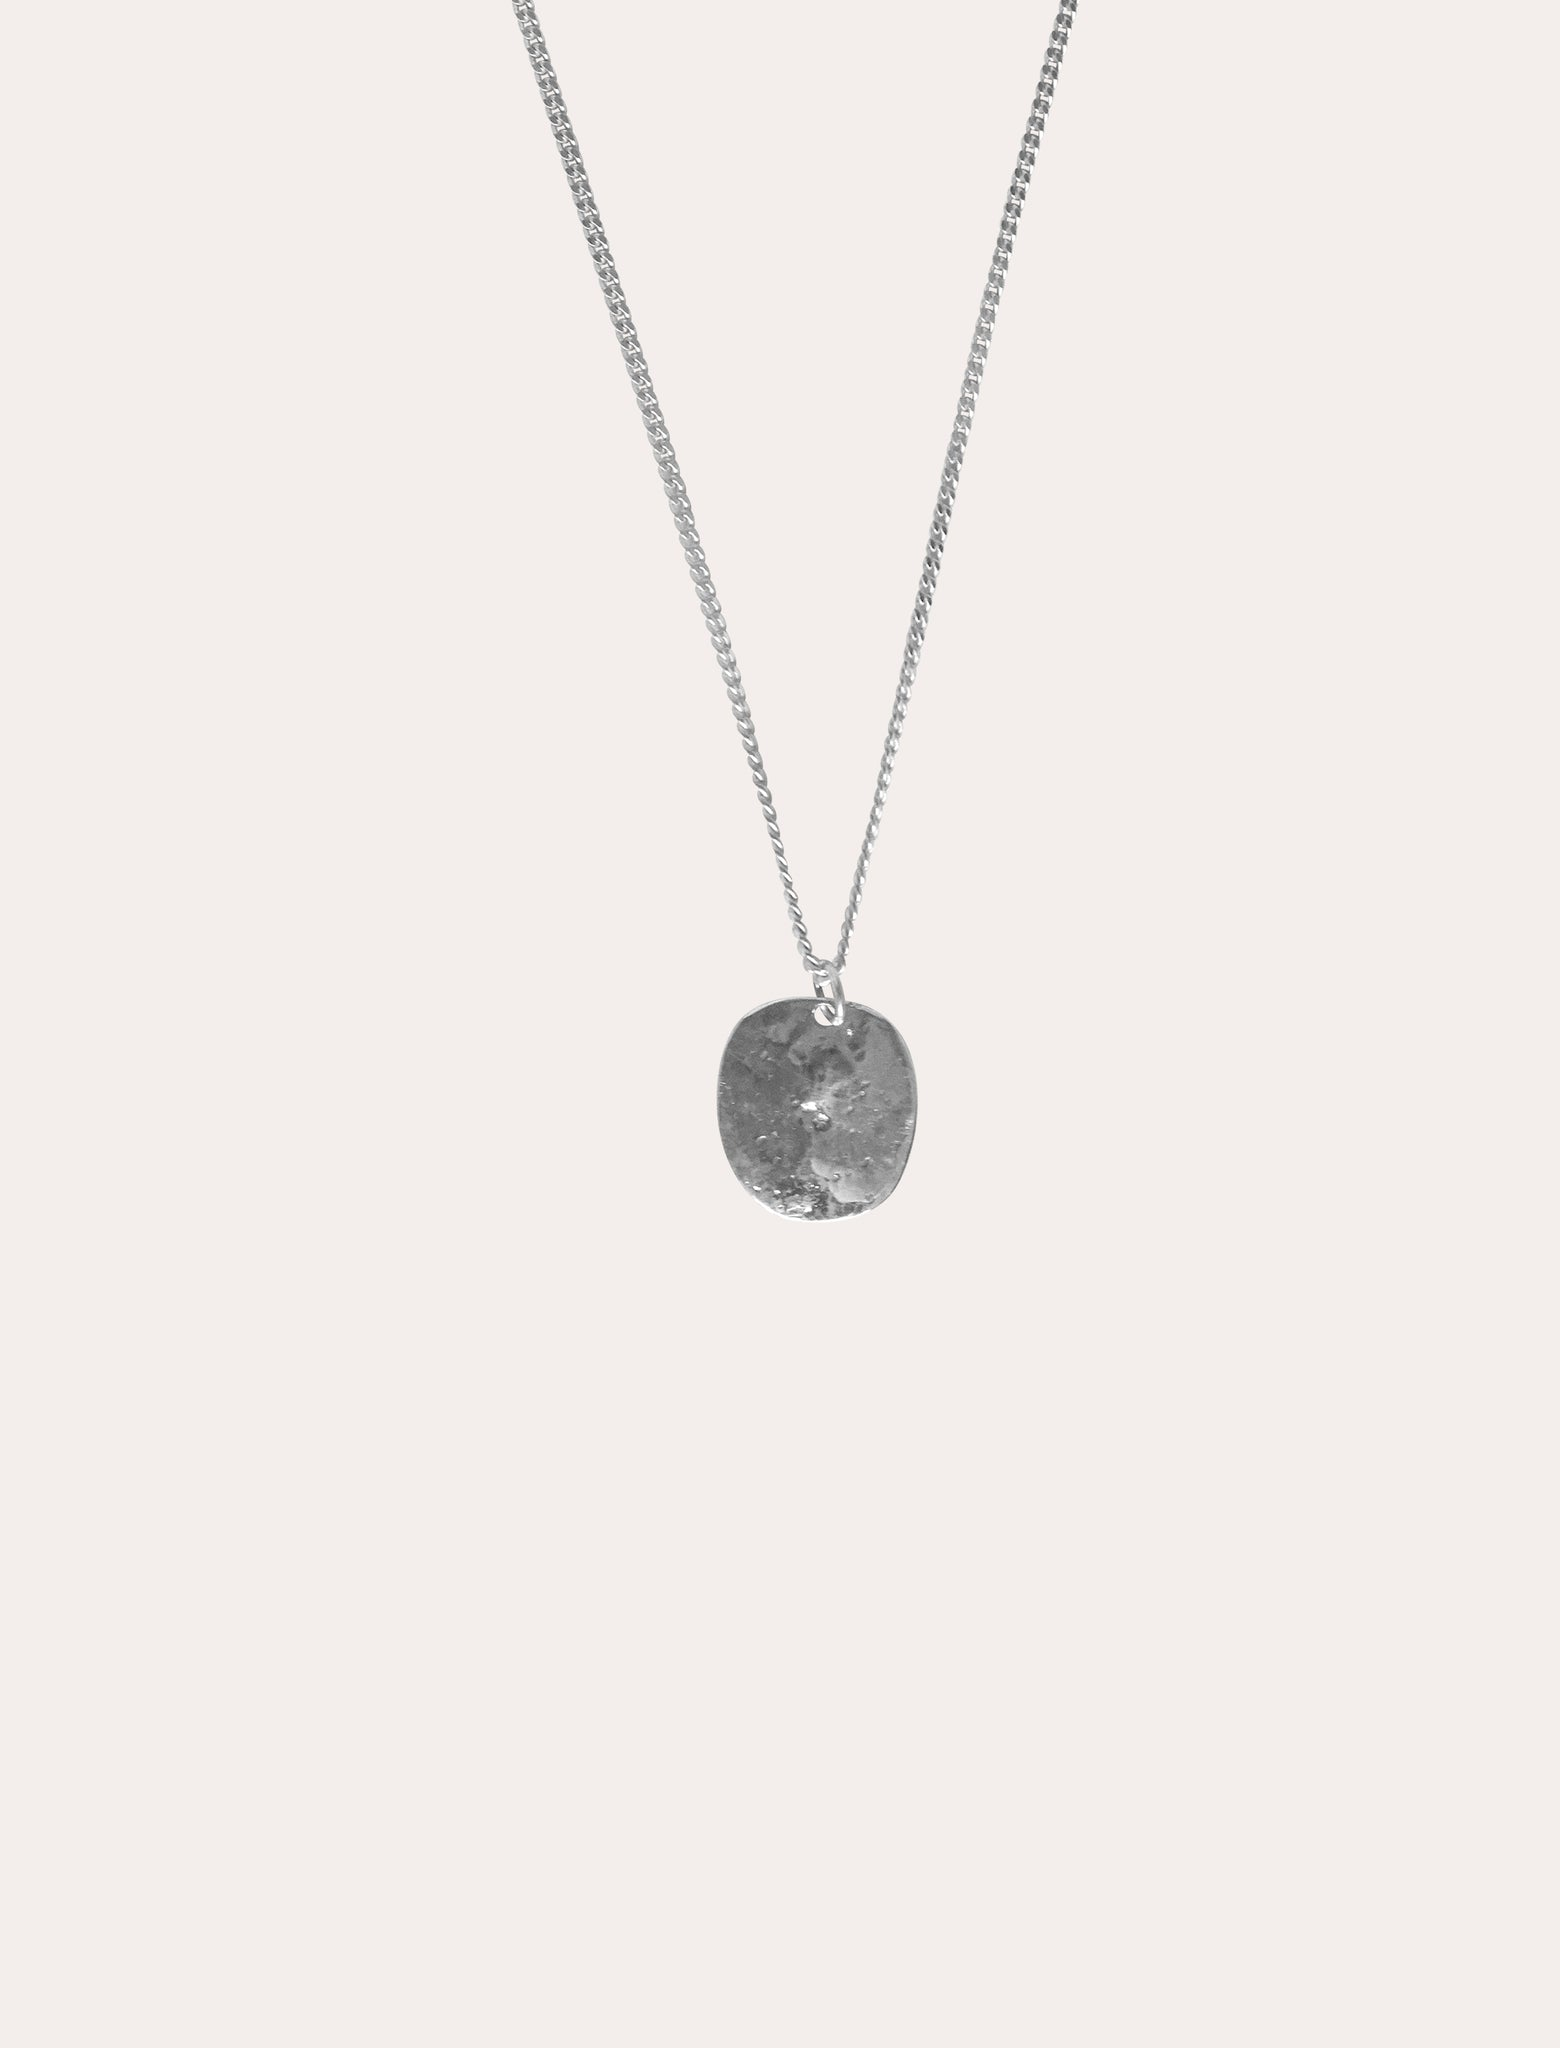 ANOTHER ASPECT x Corali, Pendanto Necklace Sterling Silver